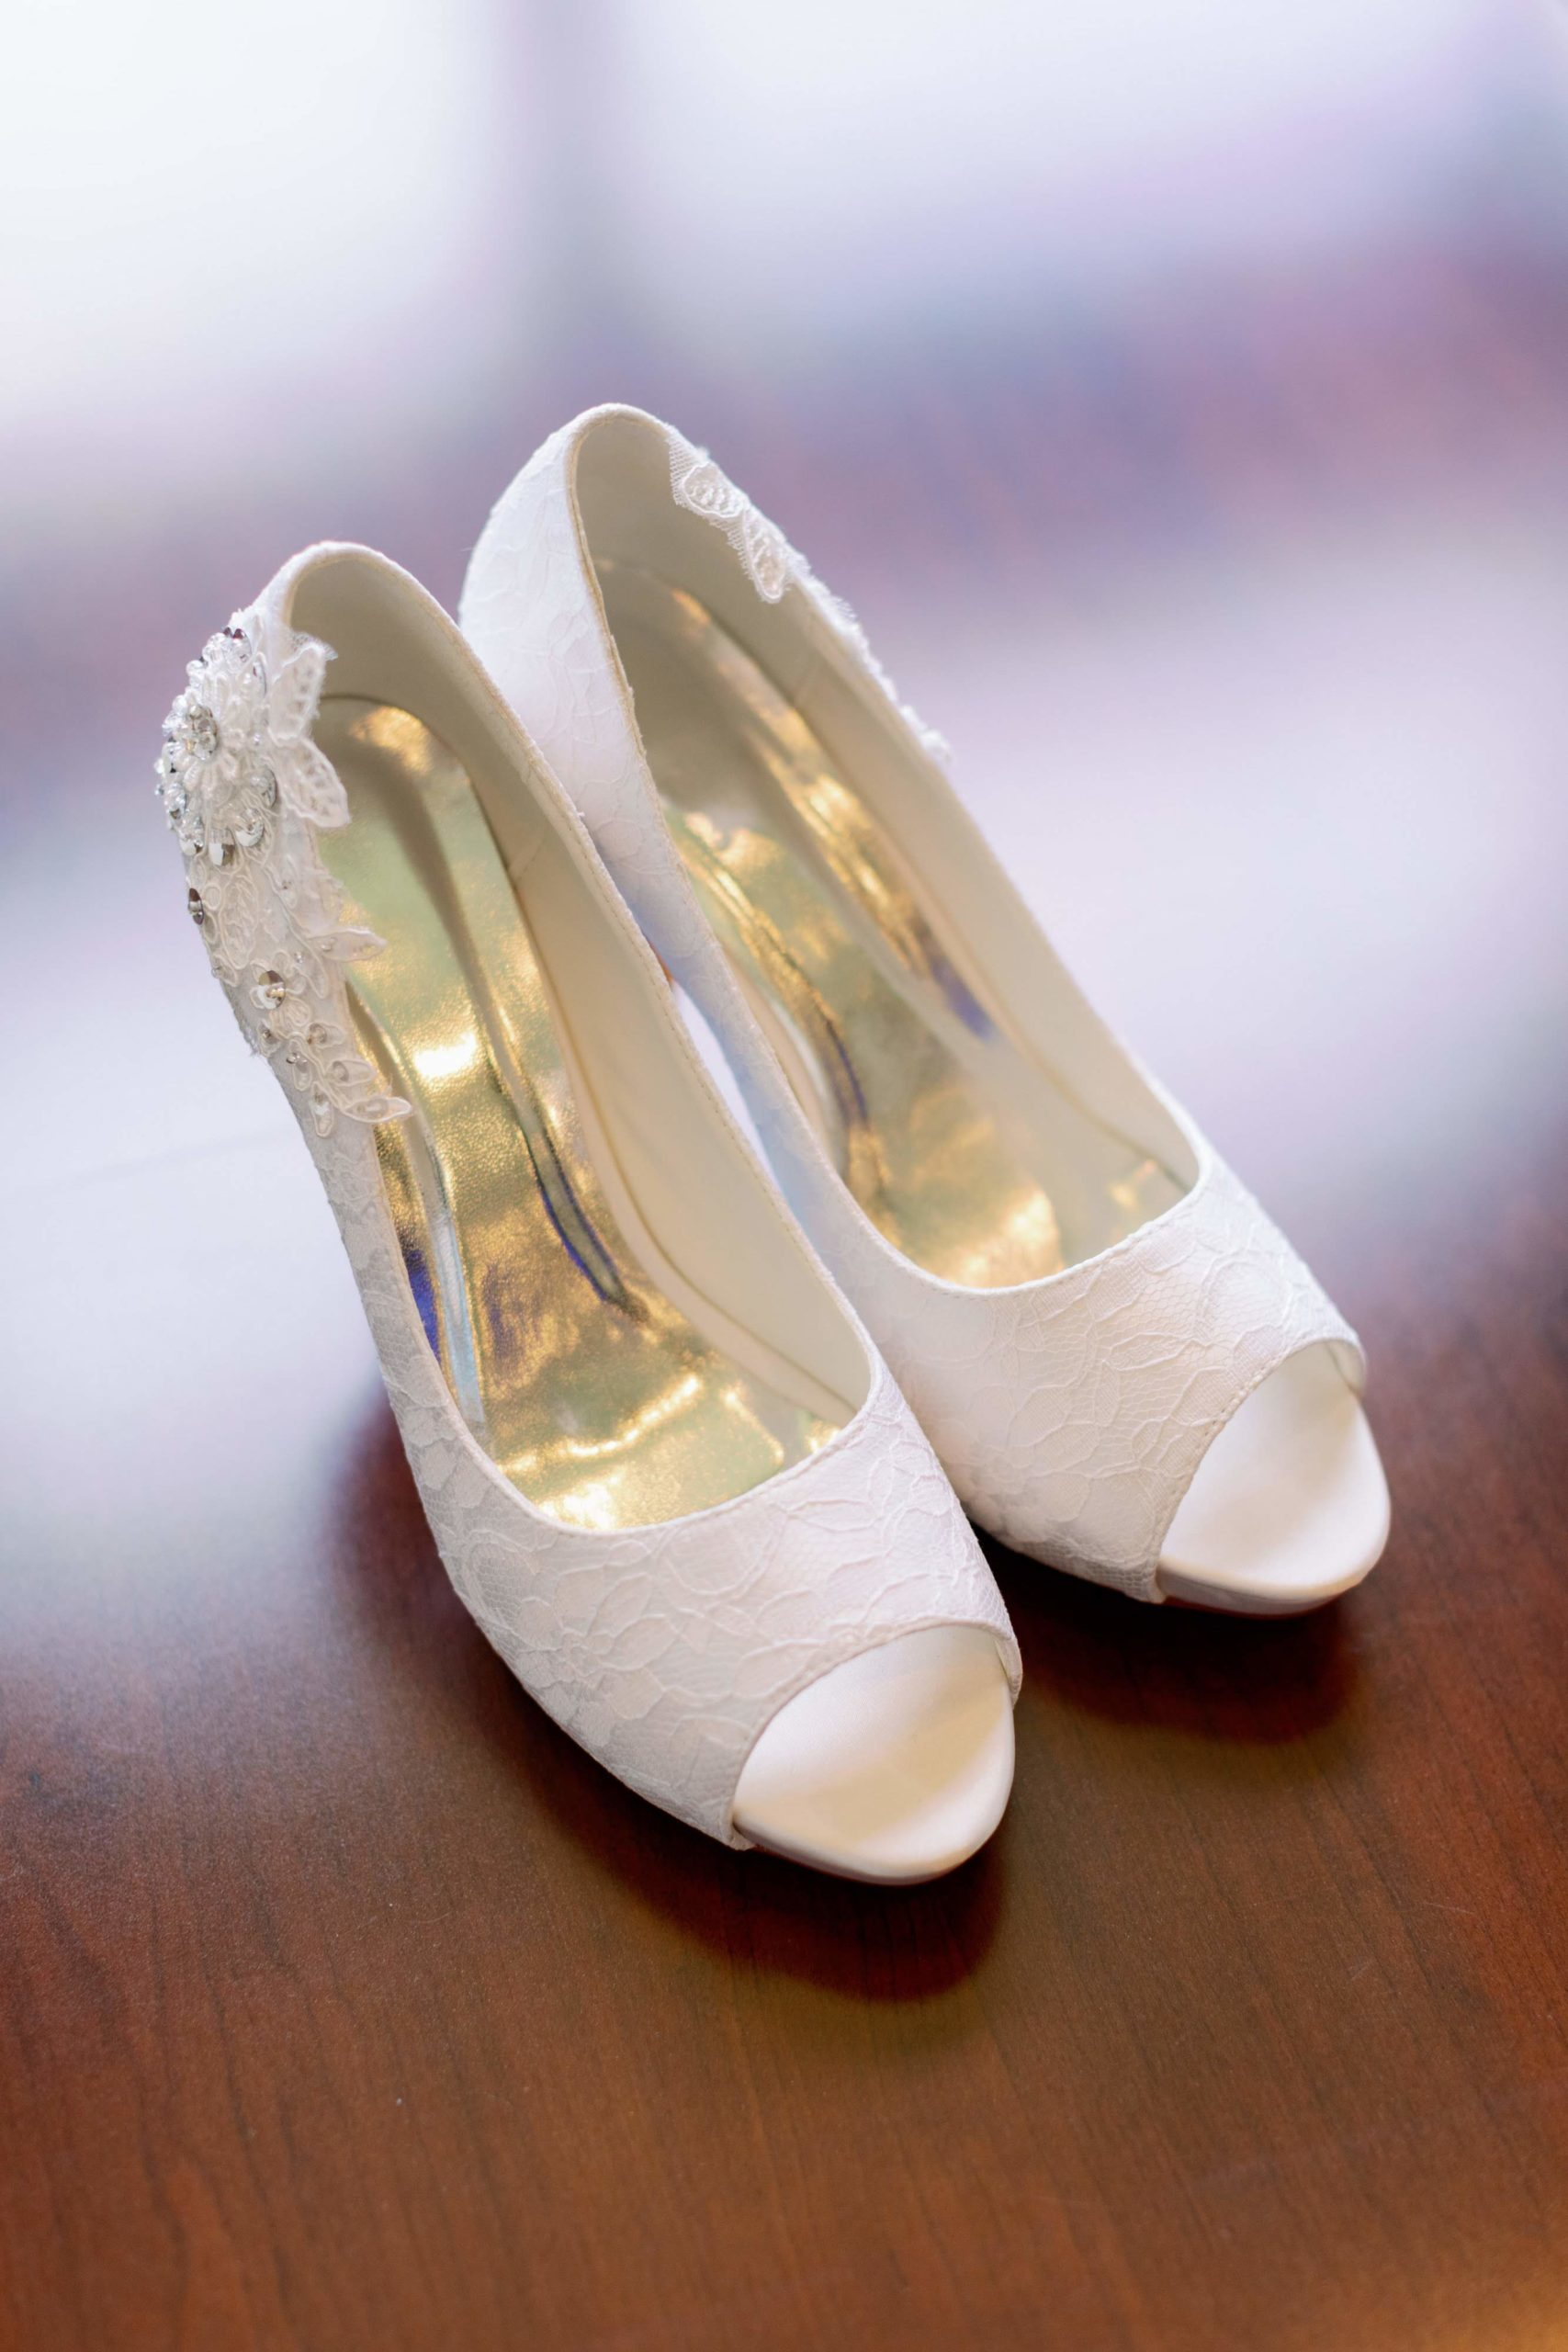 pair of white high heeled wedding shoes